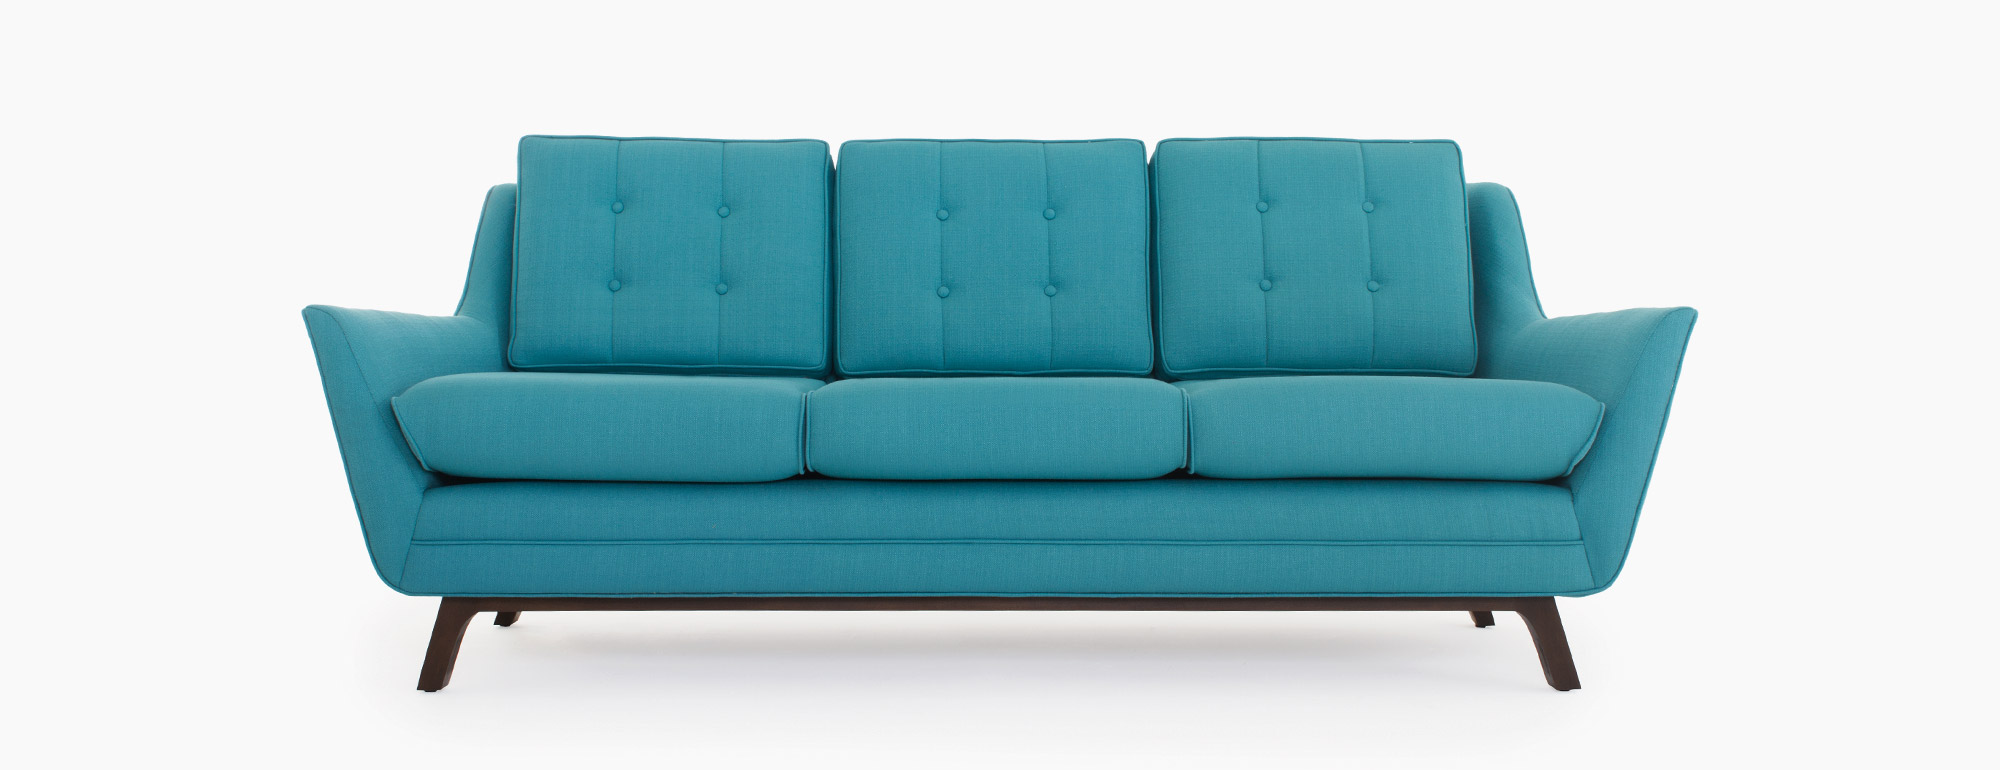 hero-eastwood-sofa-1